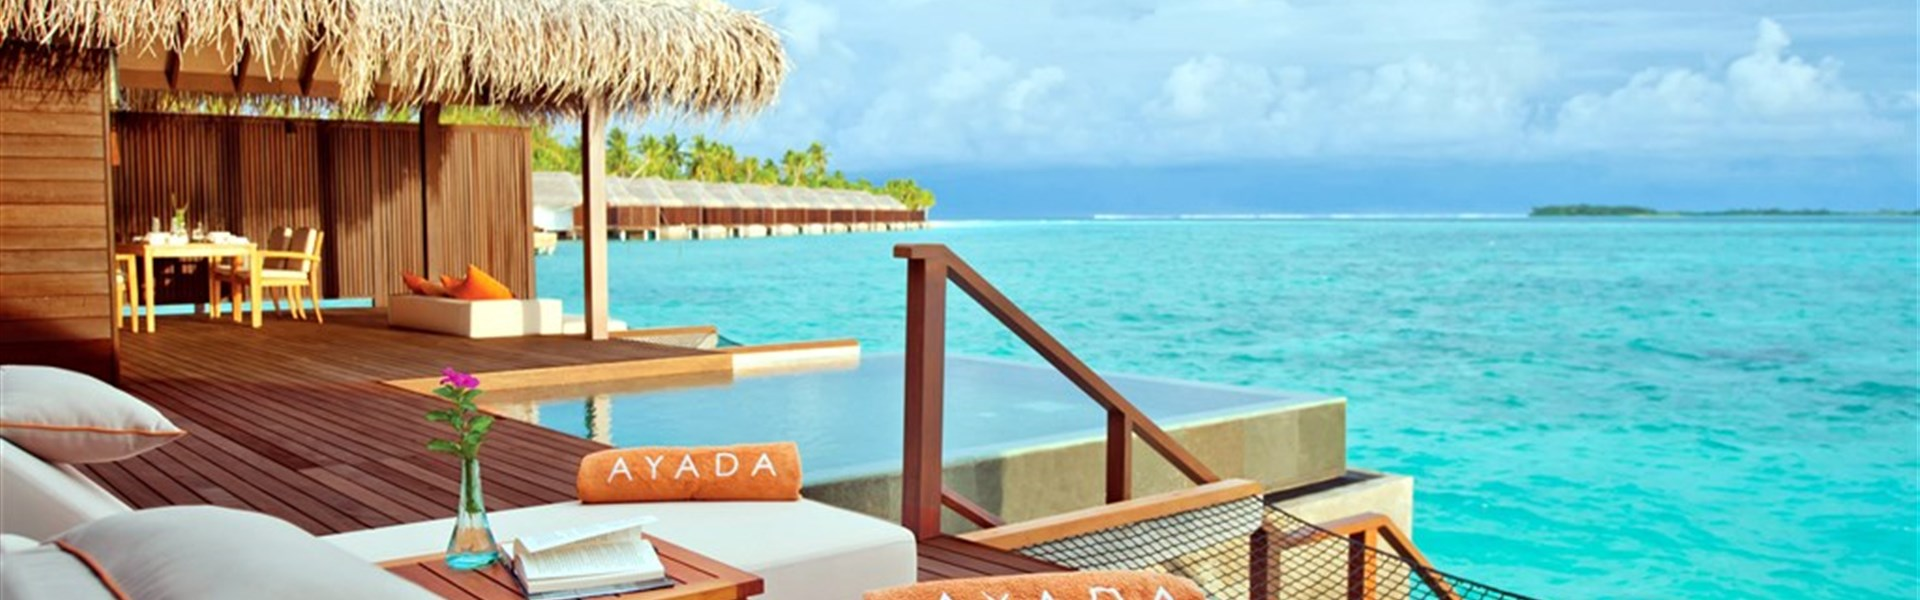 Marco Polo - Ayada Maldives -